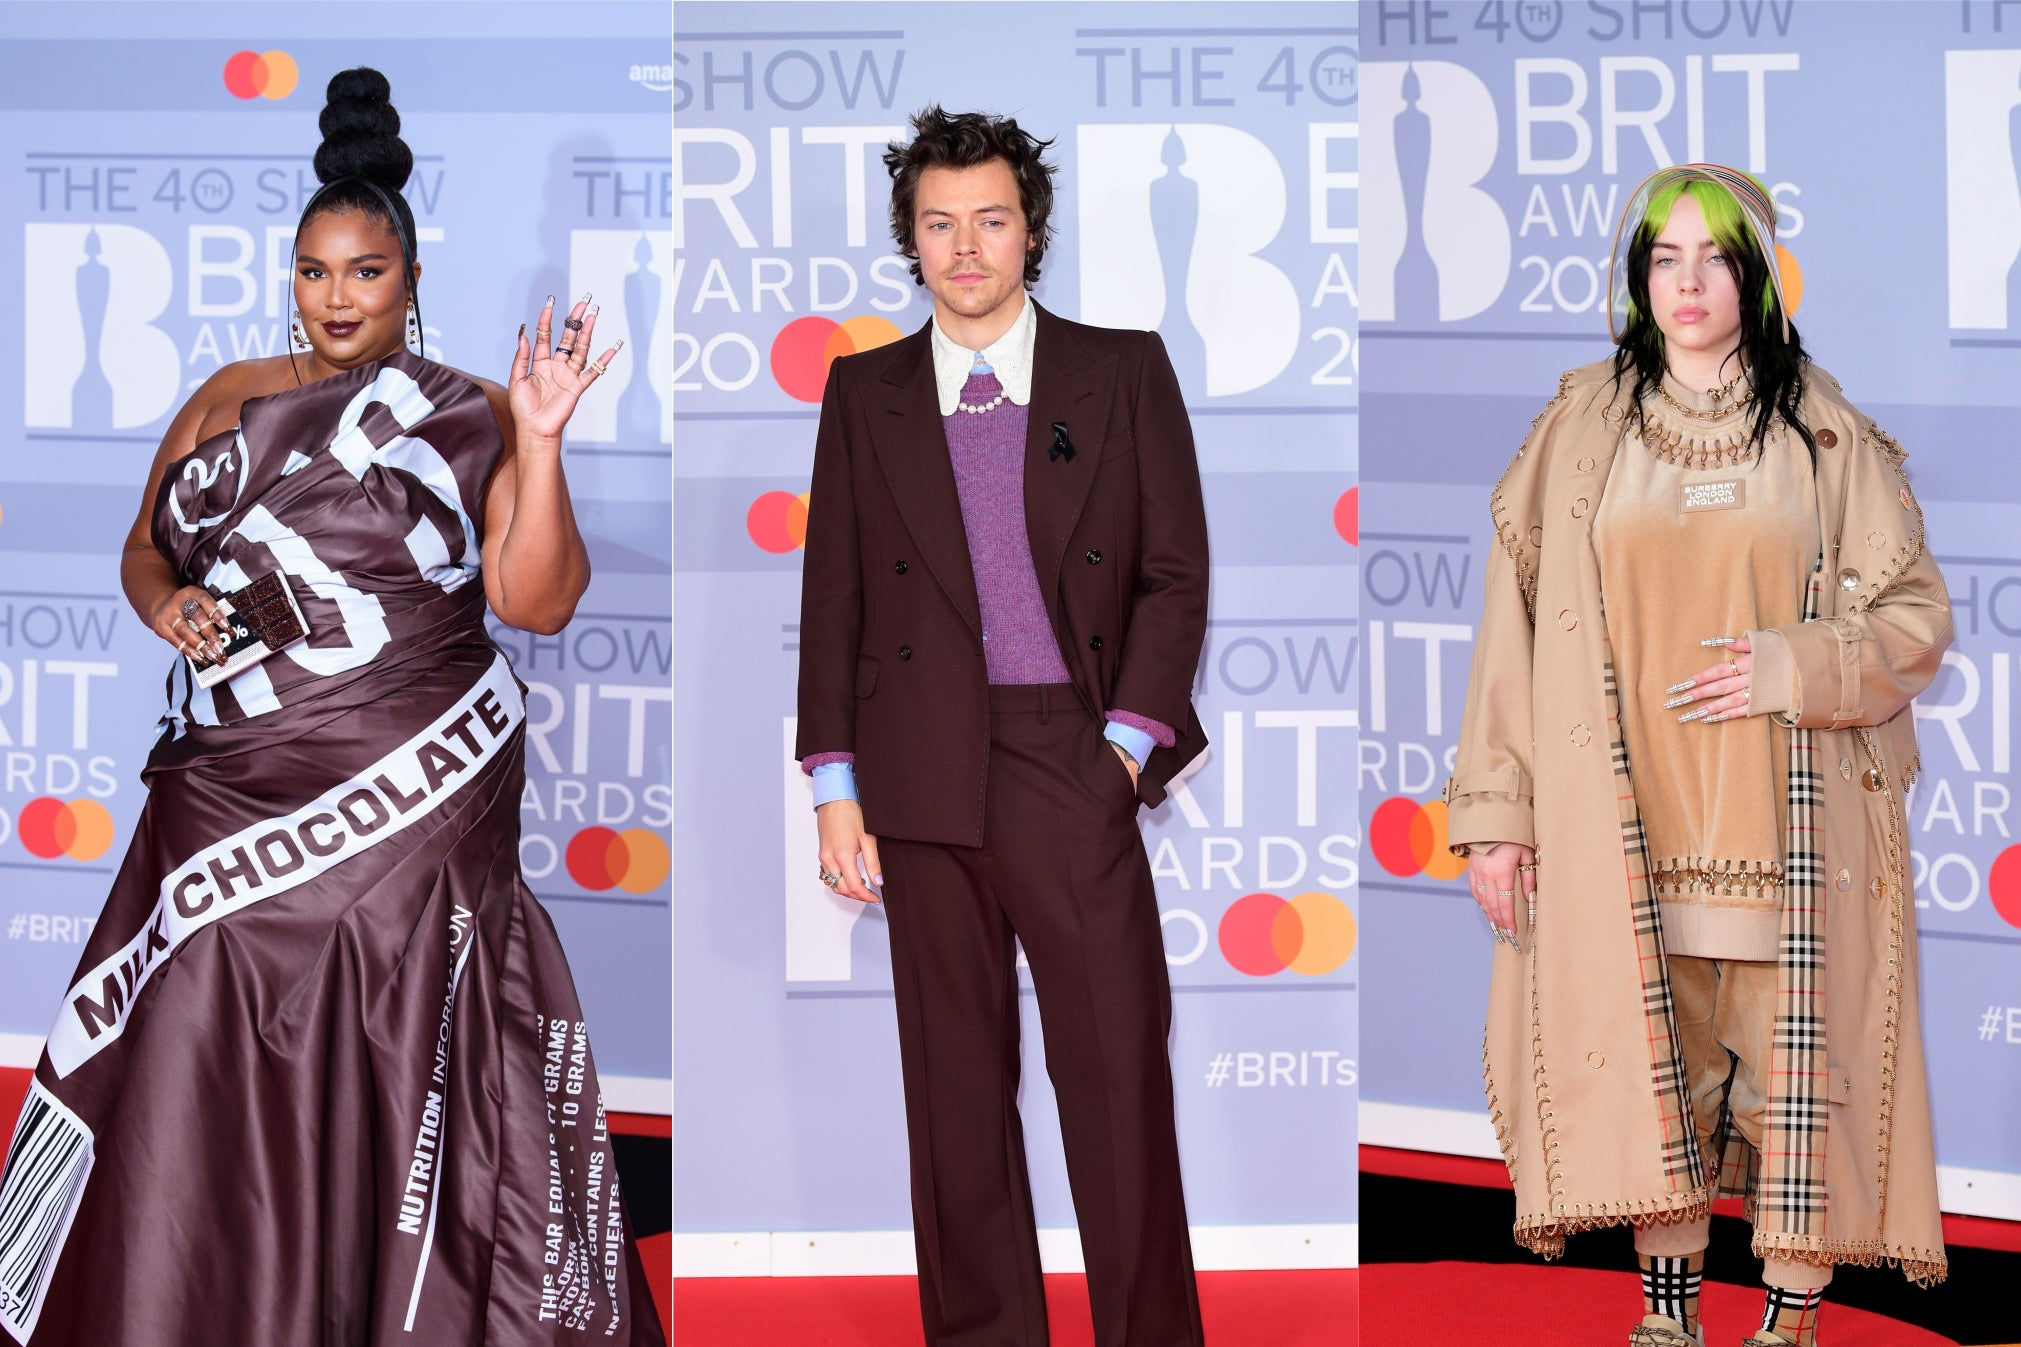 Lizzo, Billie Eilish and Harry Styles among best-dressed stars on red carpet